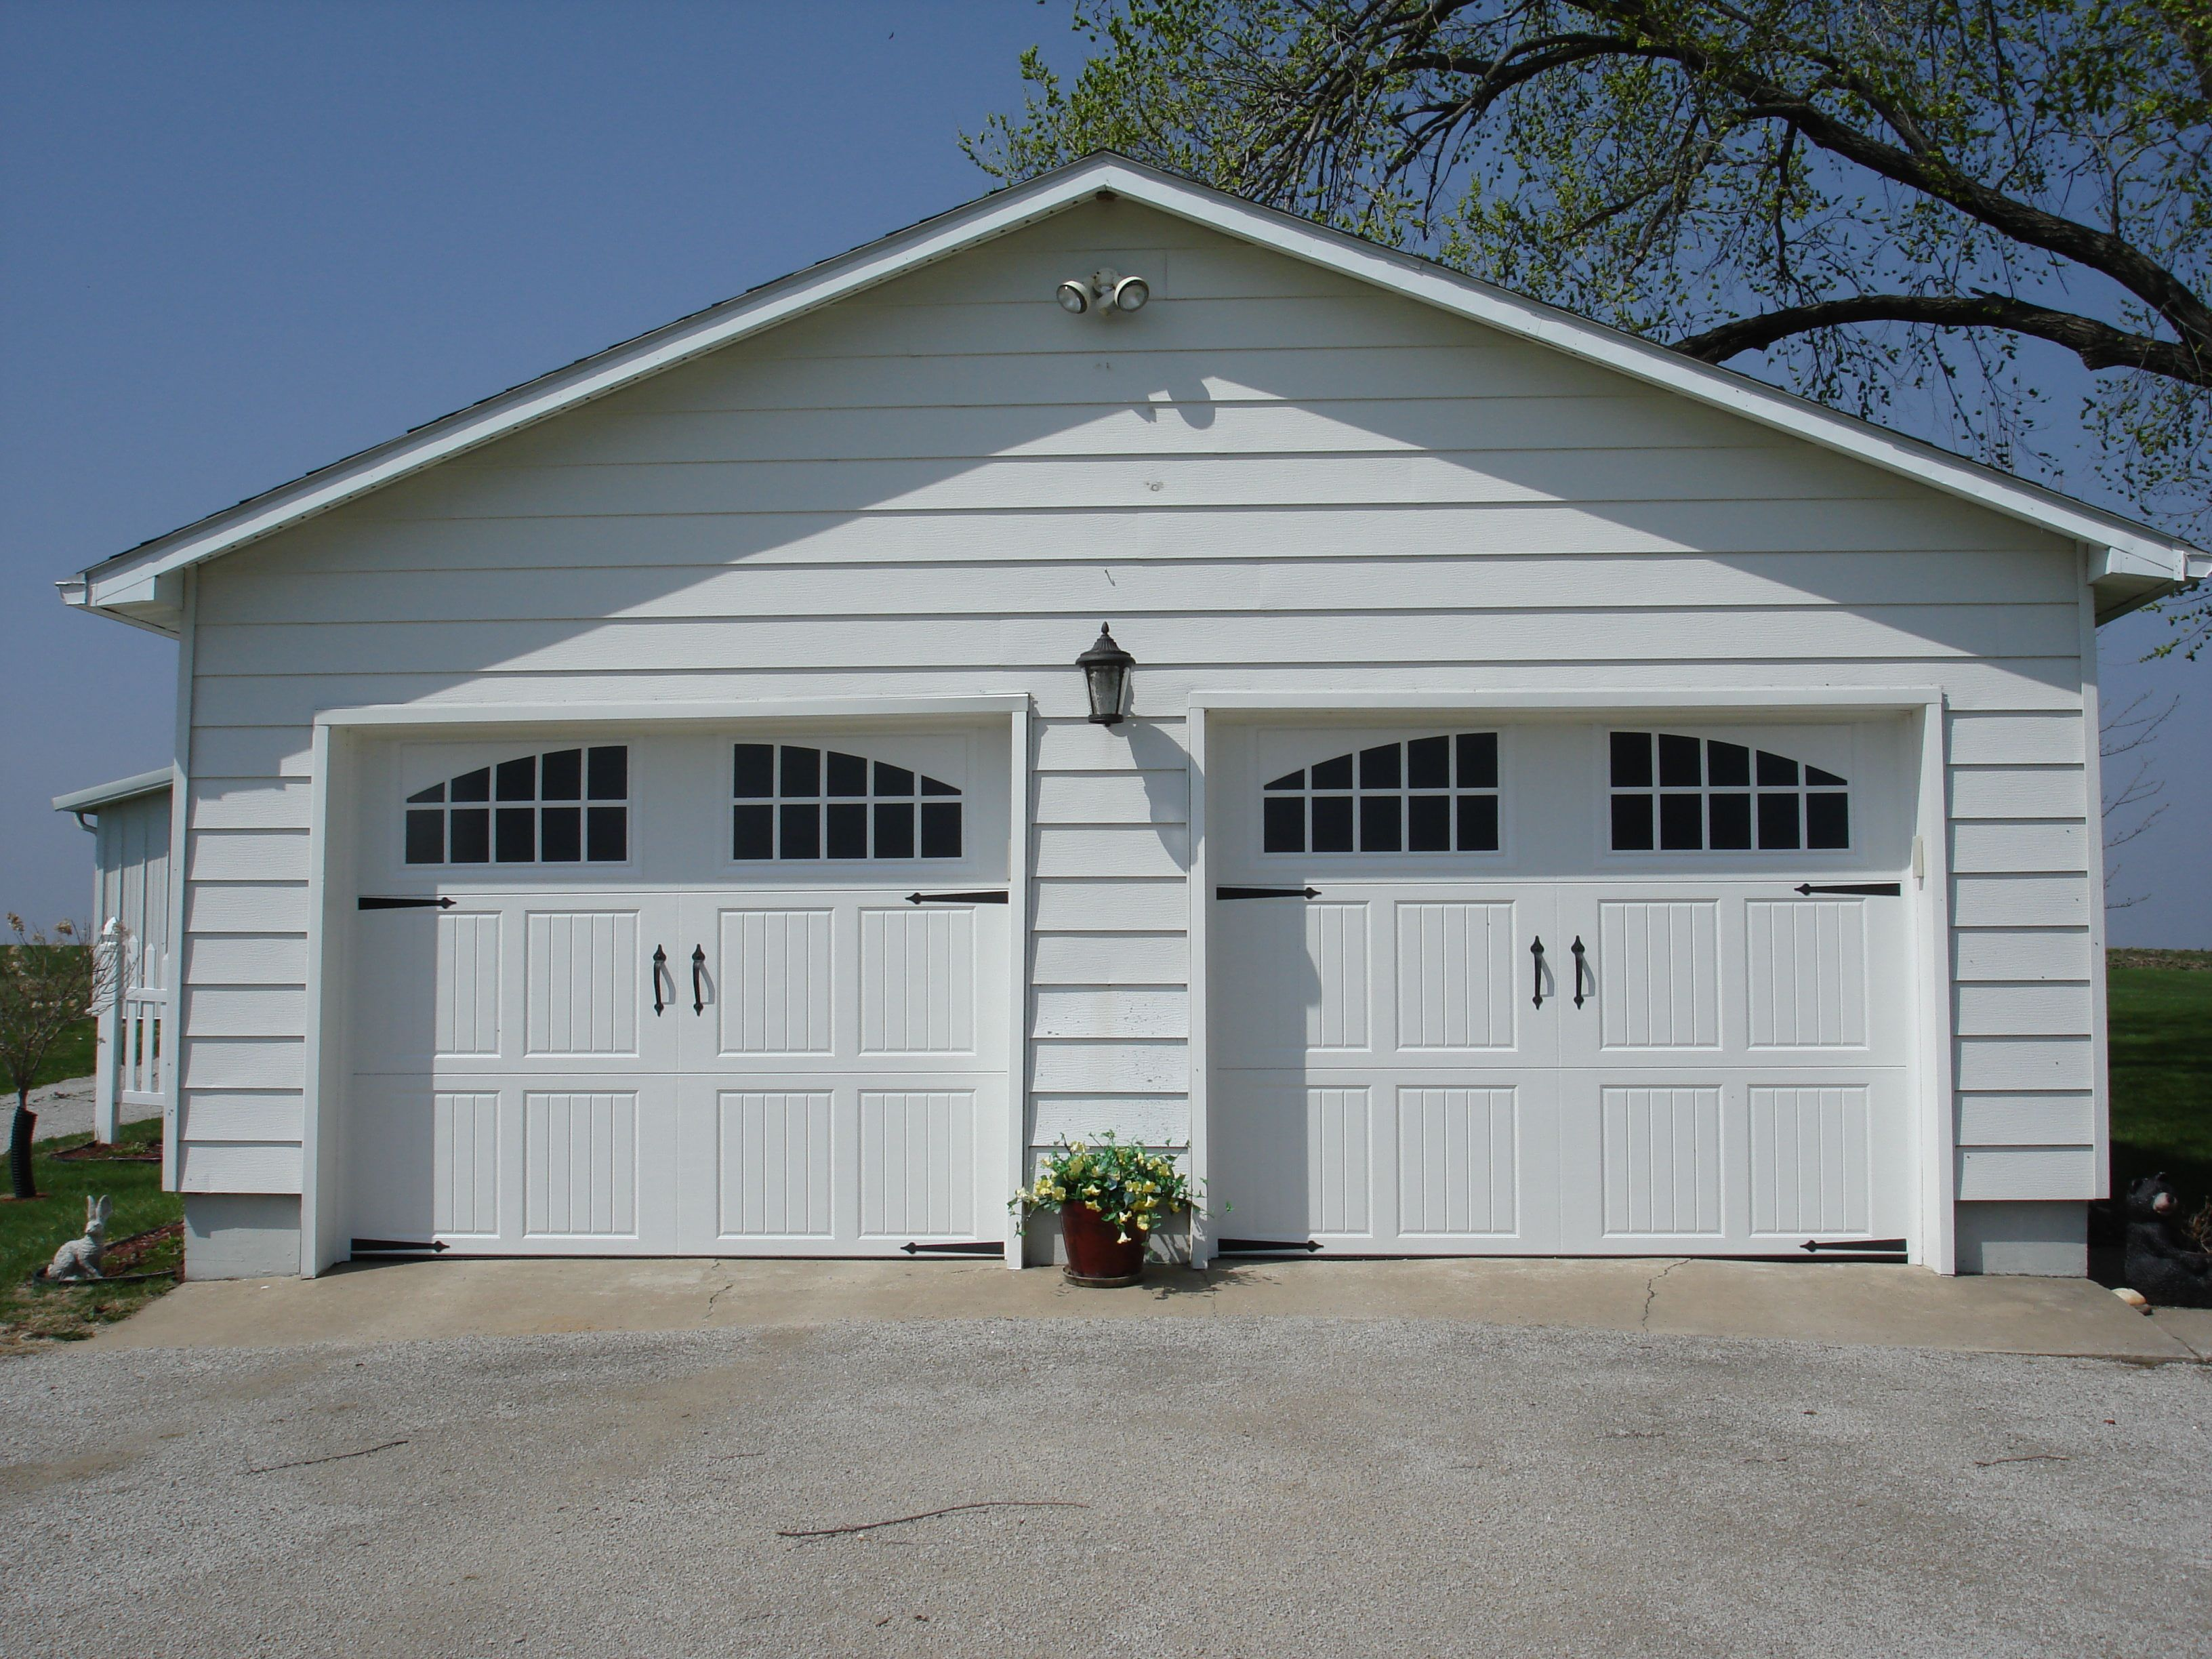 Beau Amarr® Classica® Collection Garage Doors At Renner Supply   Family Owned U0026  Operated Garage Door Experts Since